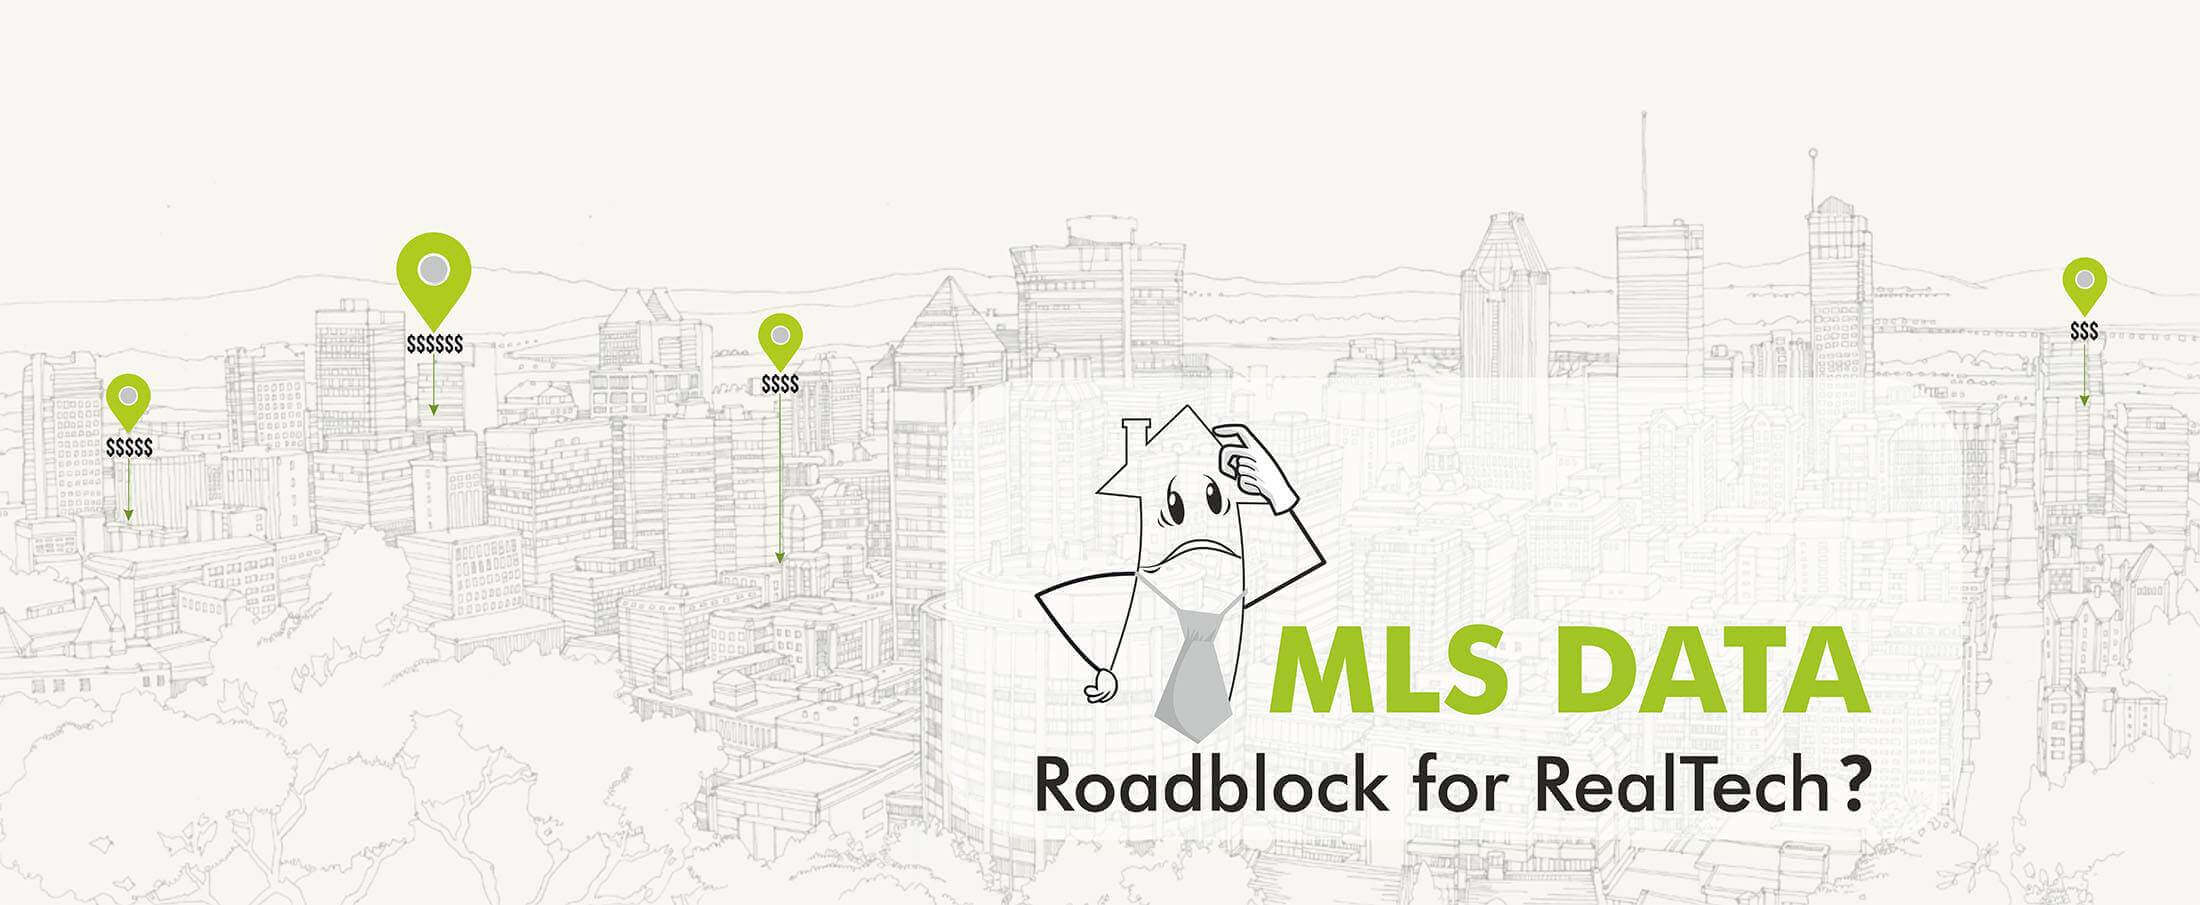 MLS (Multiple Listing Service) Data: Roadblock for RealTech?